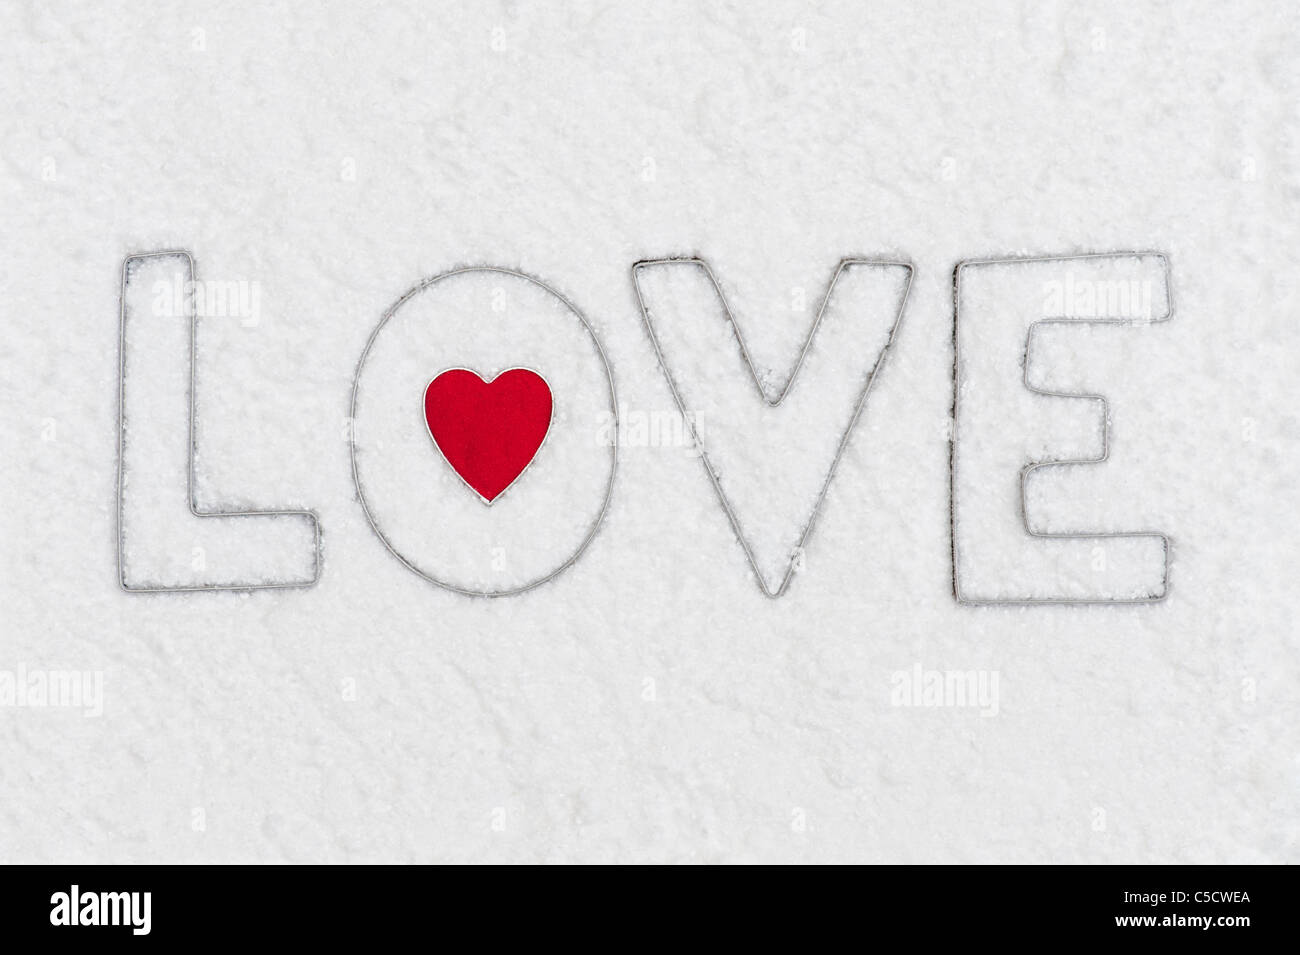 LOVE and heart shape metal letters in snow - Stock Image